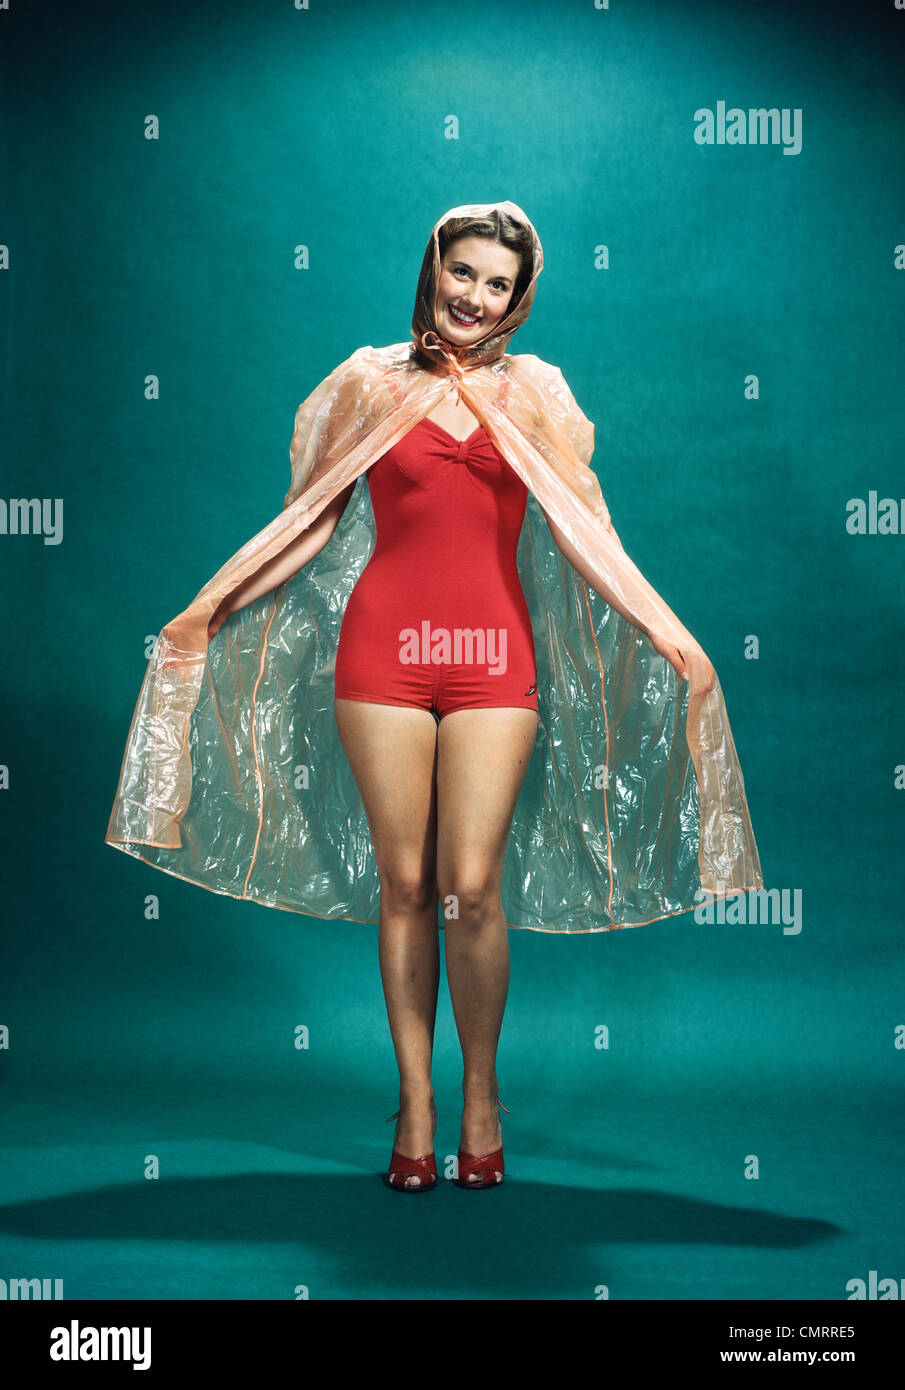 9907d3e43f1fc 1950s SMILING WOMAN PINUP WEARING RED ONE PIECE BATHING SUIT RAIN CAPE  LOOKING AT CAMERA -